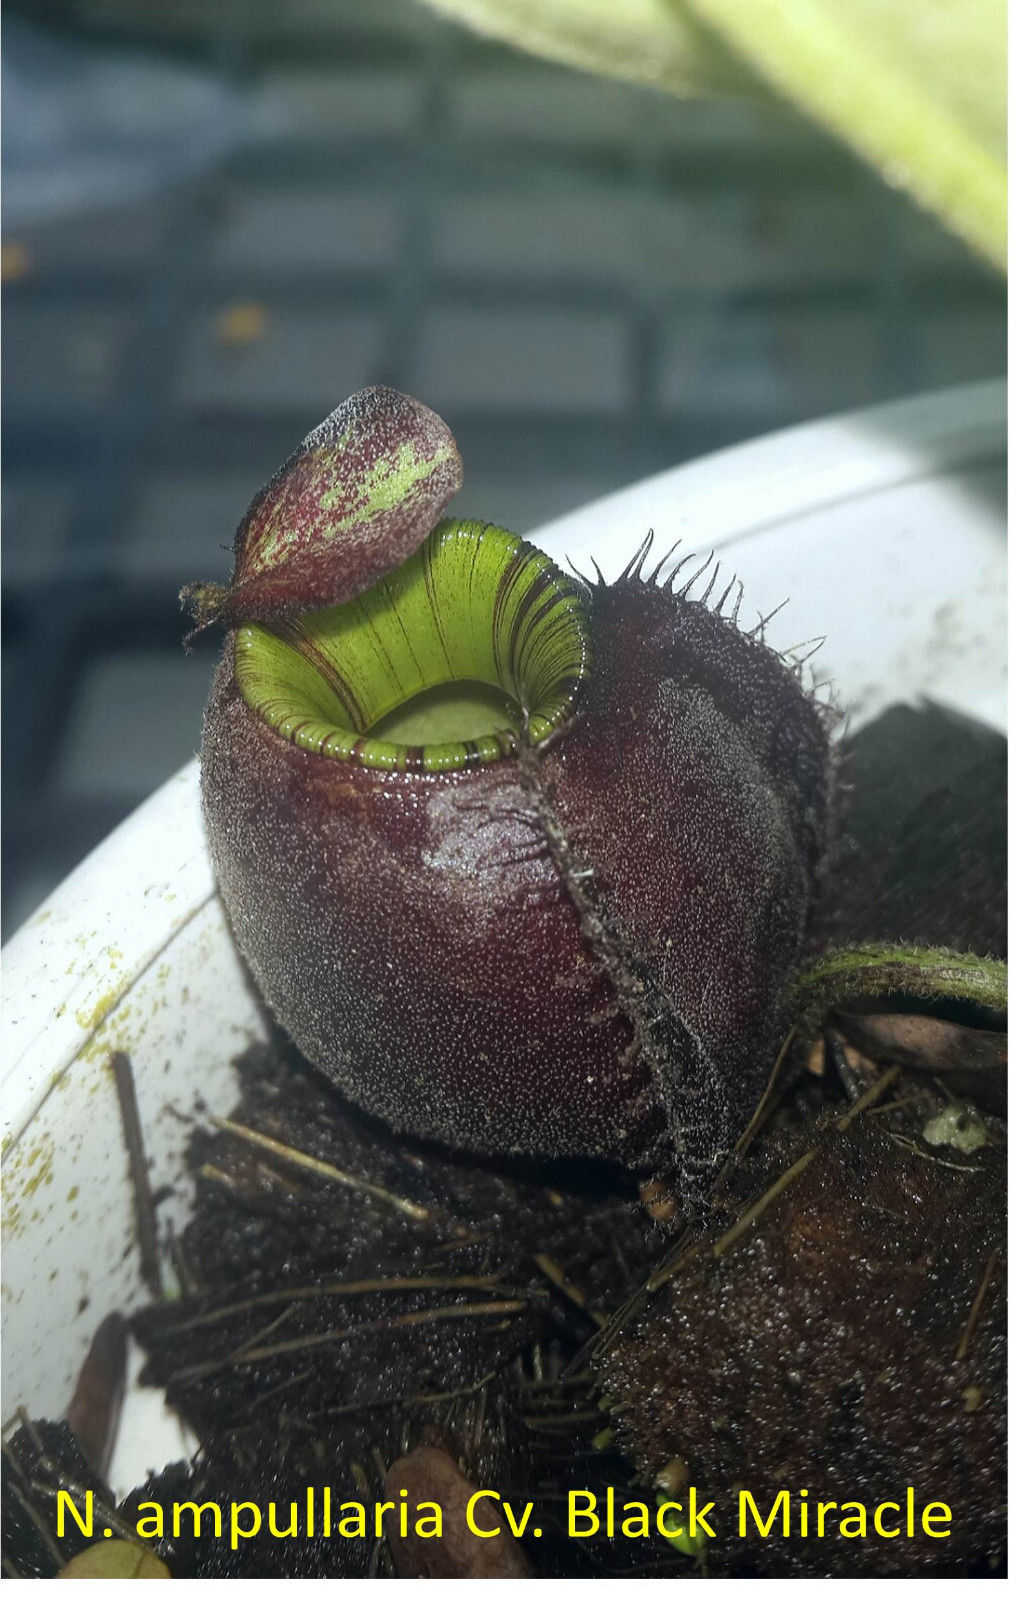 Nepenthes Ampullaria Cv. Black Miracle